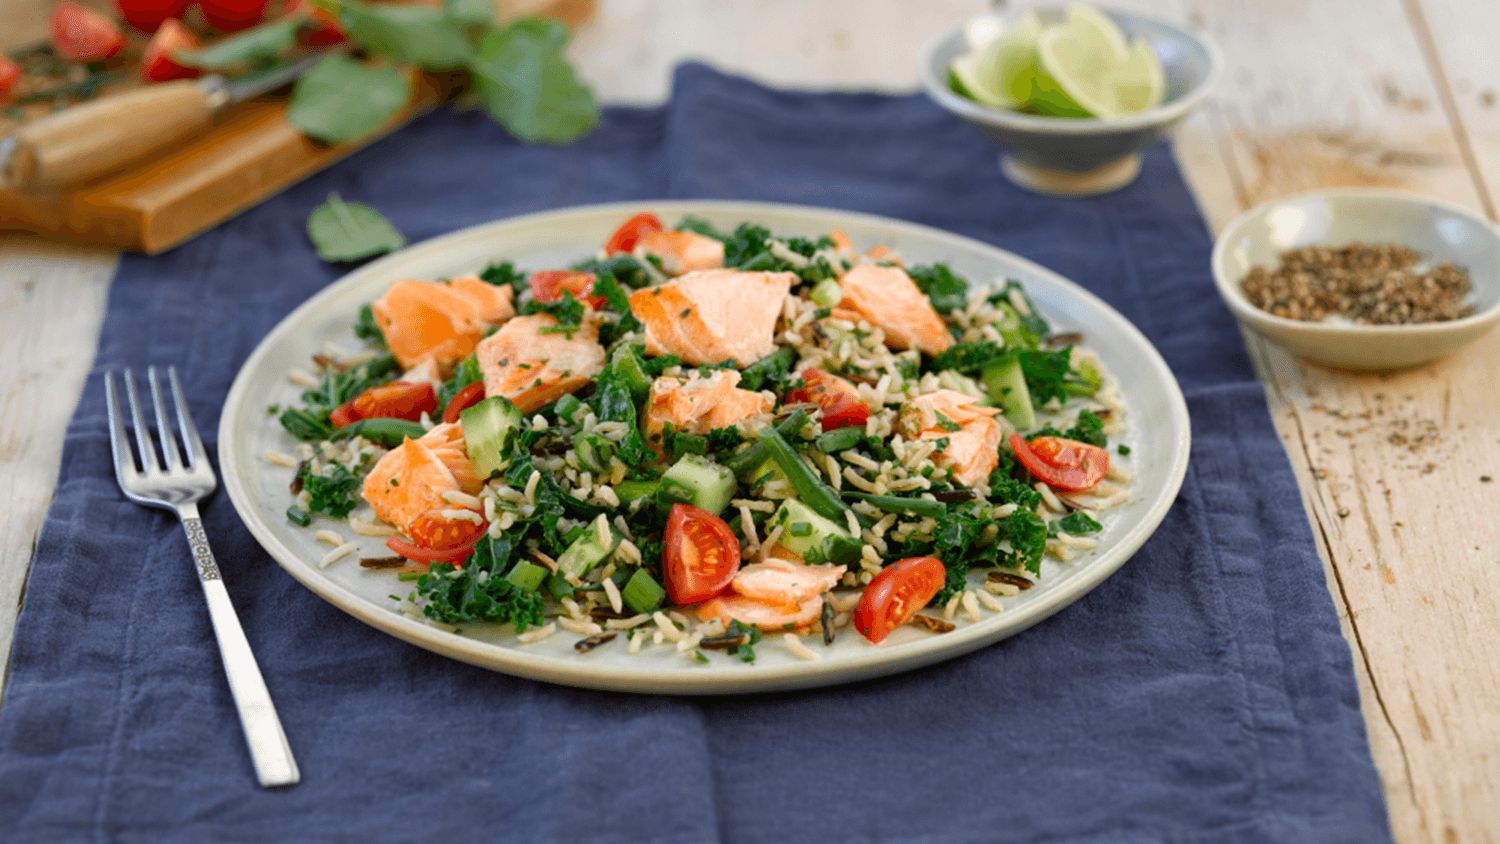 Salmon and Kale Wild Rice Salad